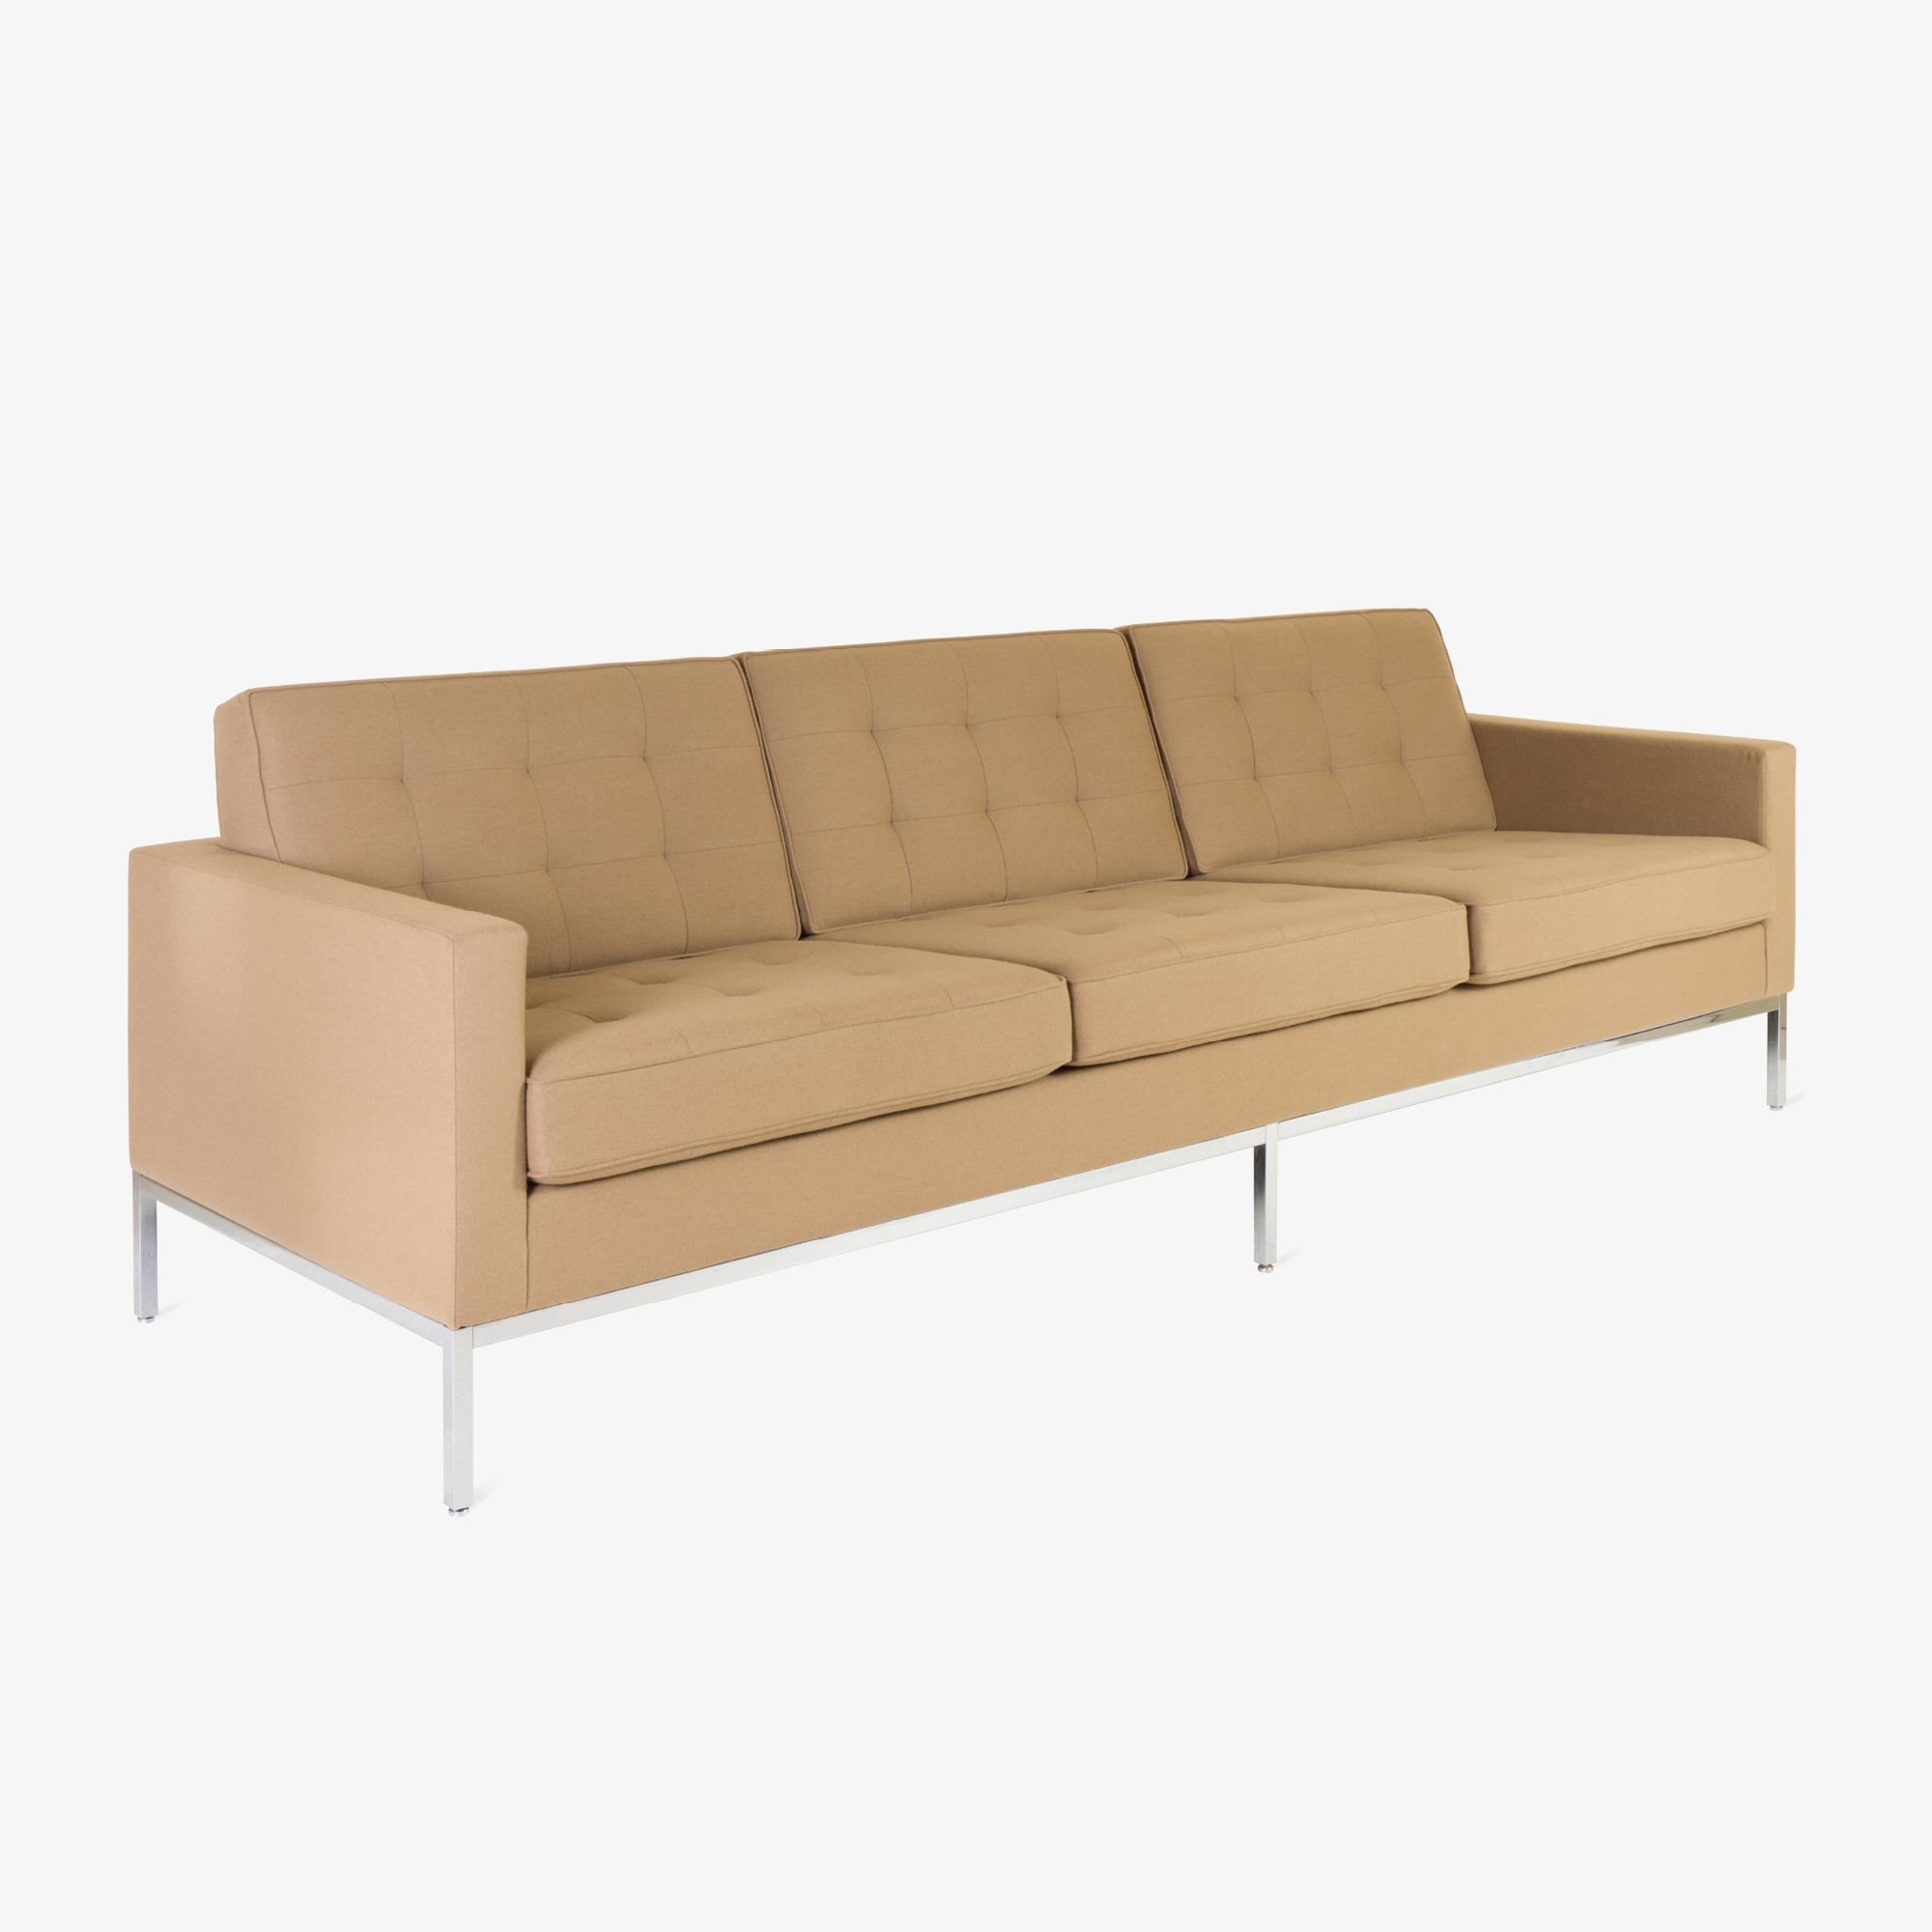 The Classic Florence Knoll Sofa; A Quintessential Piece Of Midcentury  Design. This Contemporary Edition